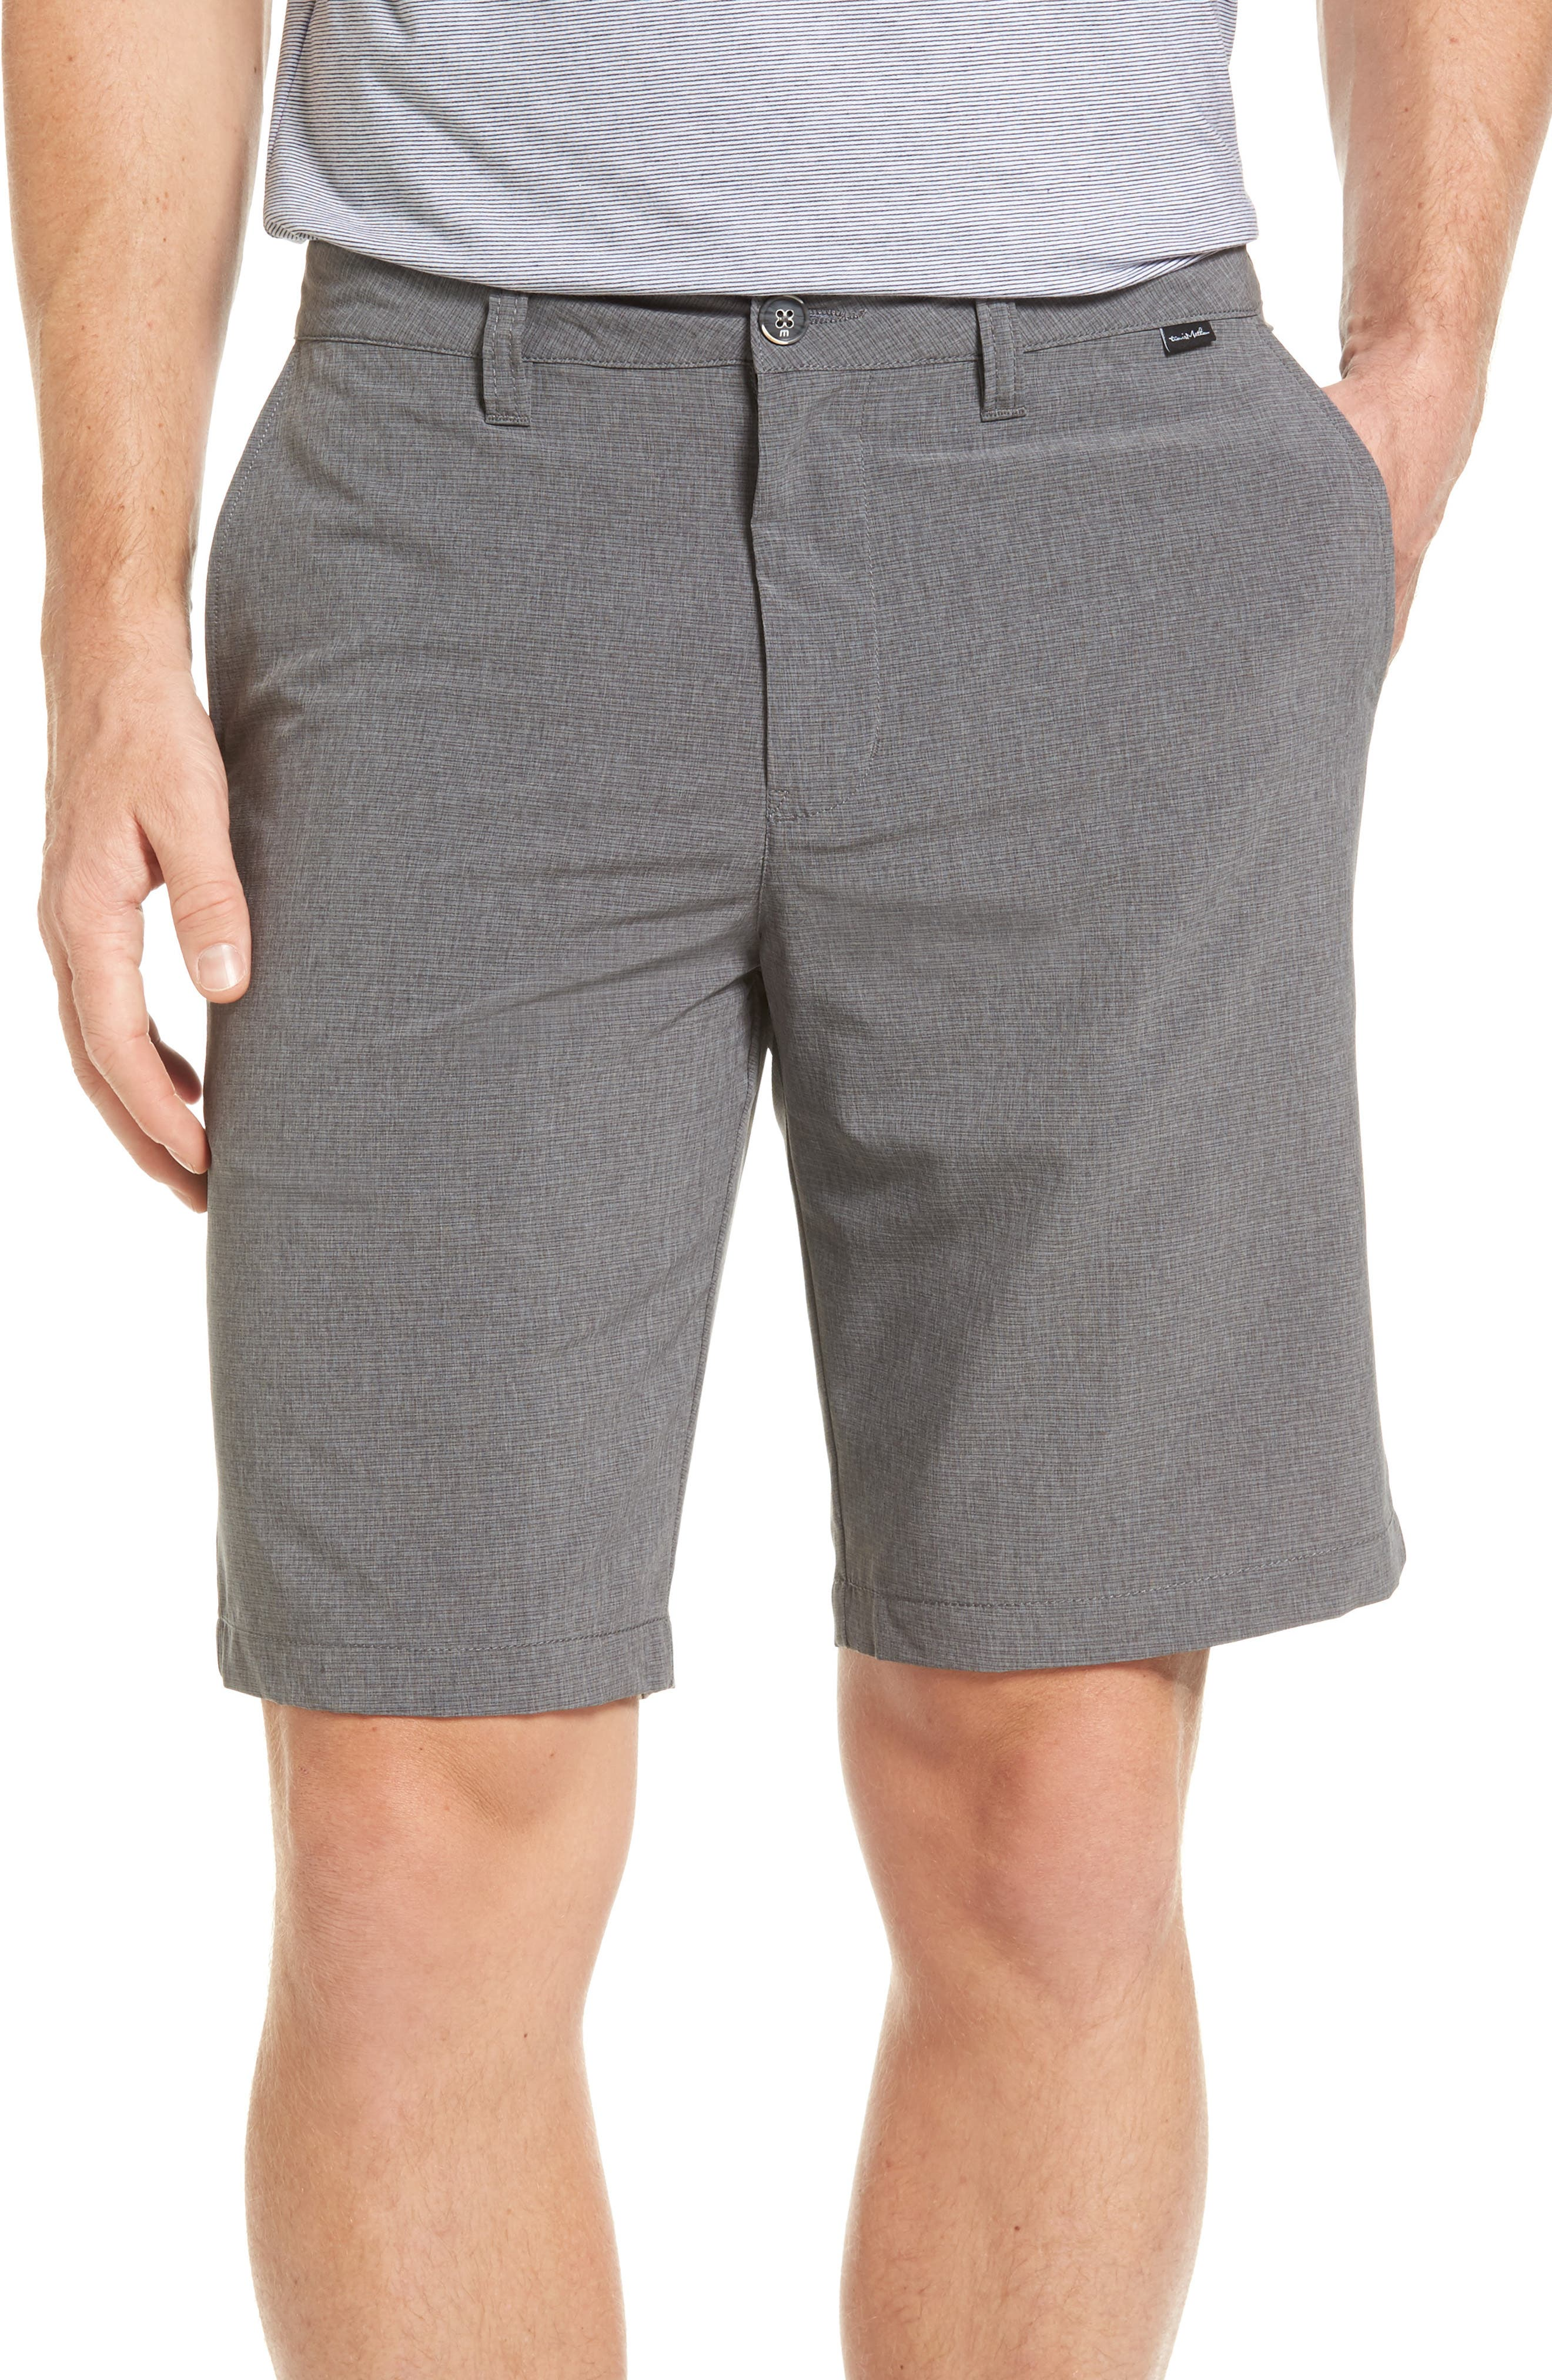 Chuck Shorts,                         Main,                         color, Heather Alloy